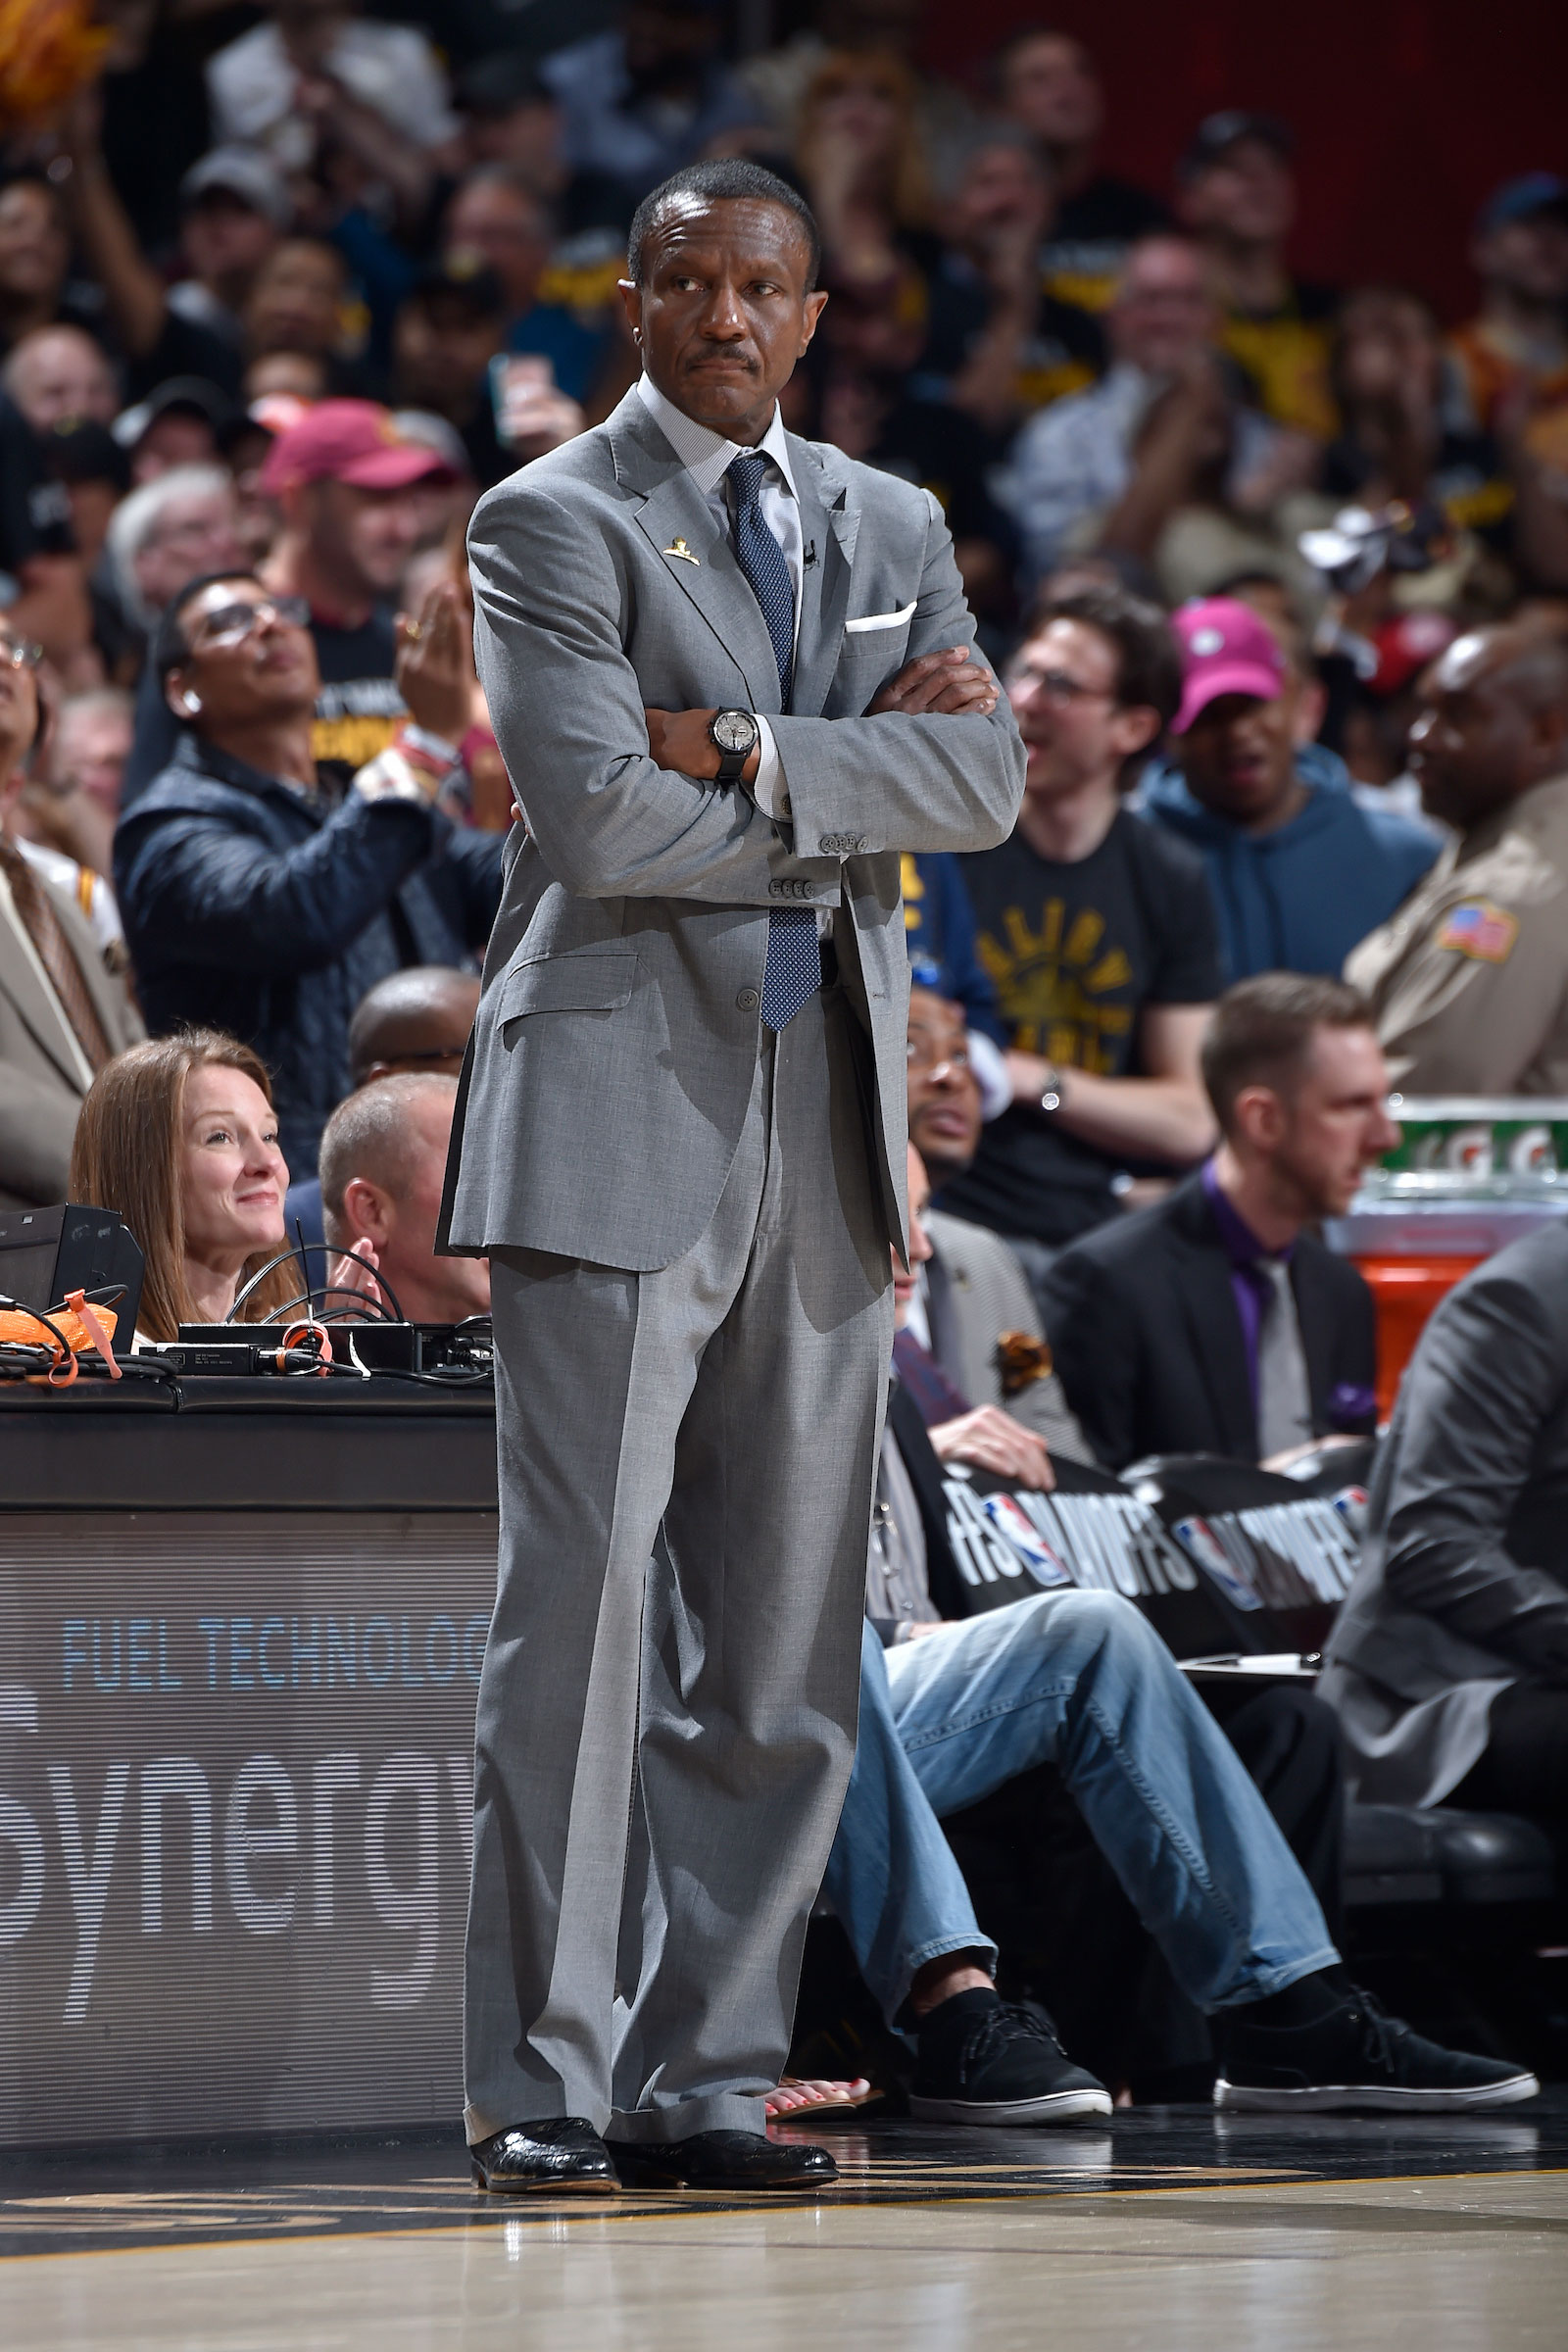 Head Coach Dwane Casey of the Toronto Raptors looks on against the Cleveland Cavaliers during Game Three of the Eastern Conference Semi Finals of the 2018 NBA Playoffs on May 5, 2018 at Quicken Loans Arena in Cleveland, Ohio.